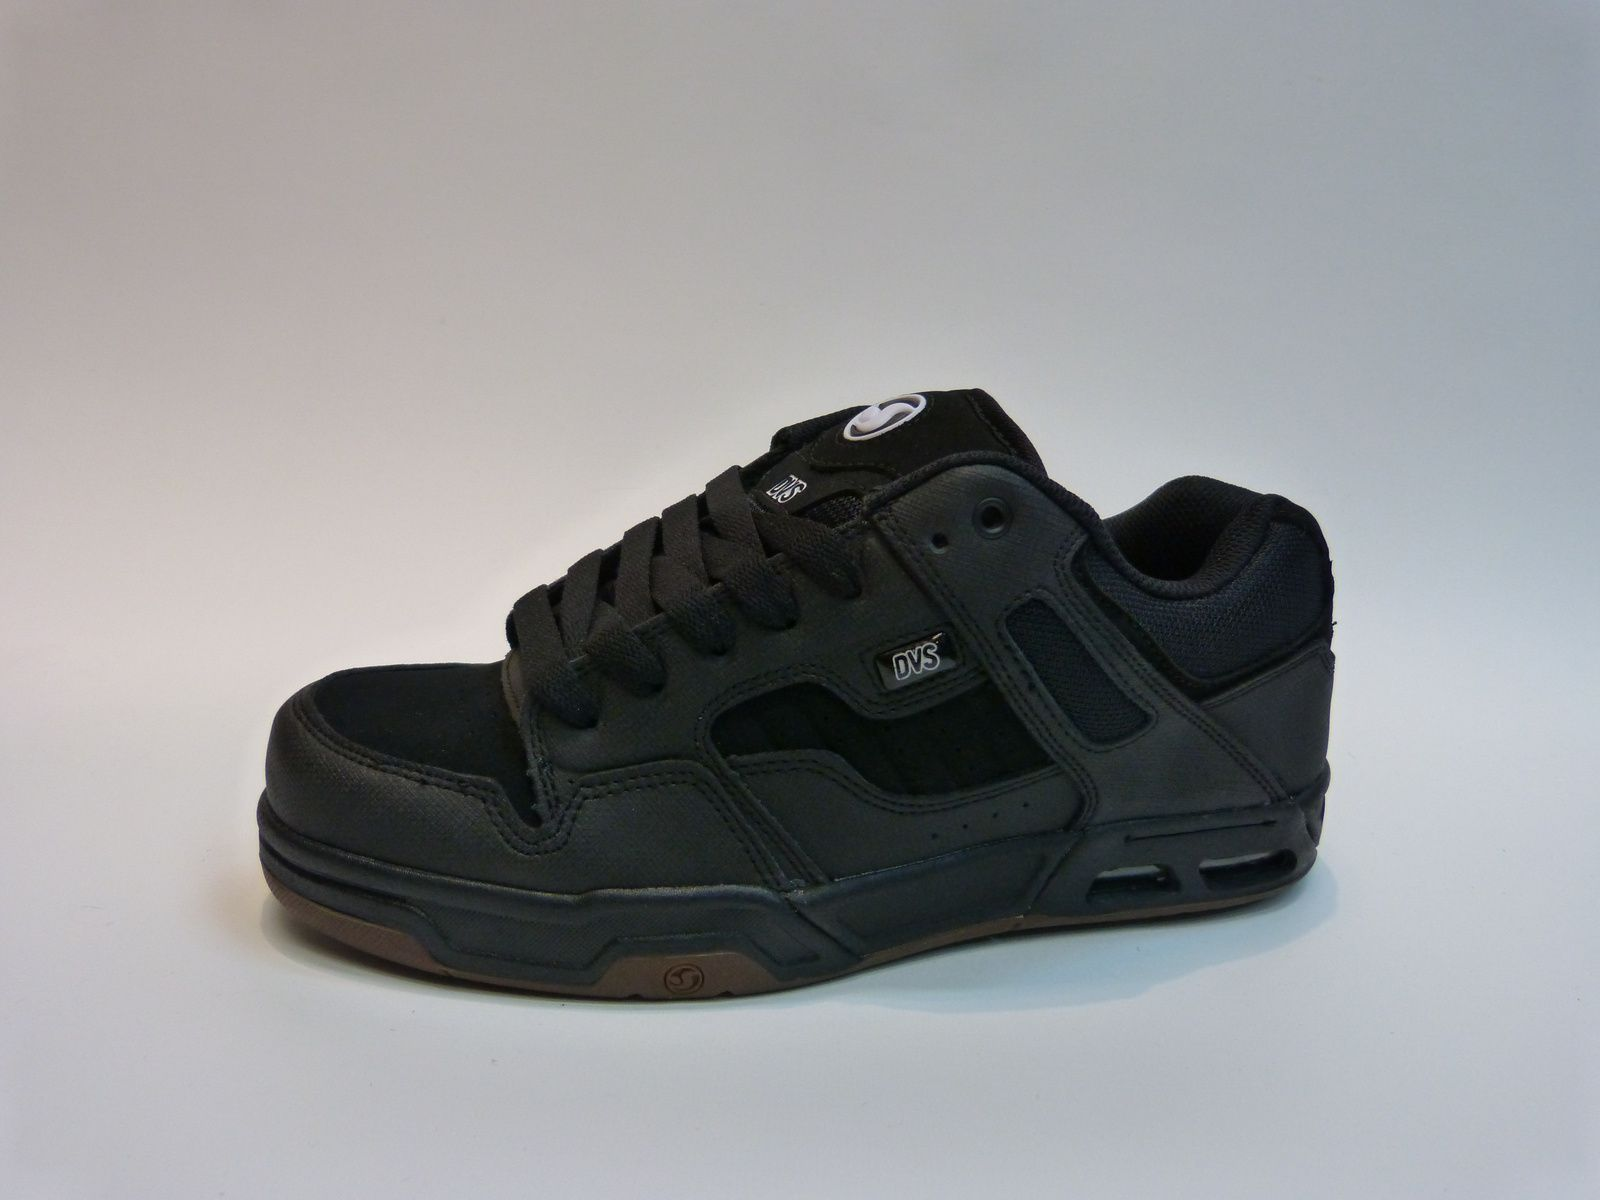 DVS Shoes spring 2015